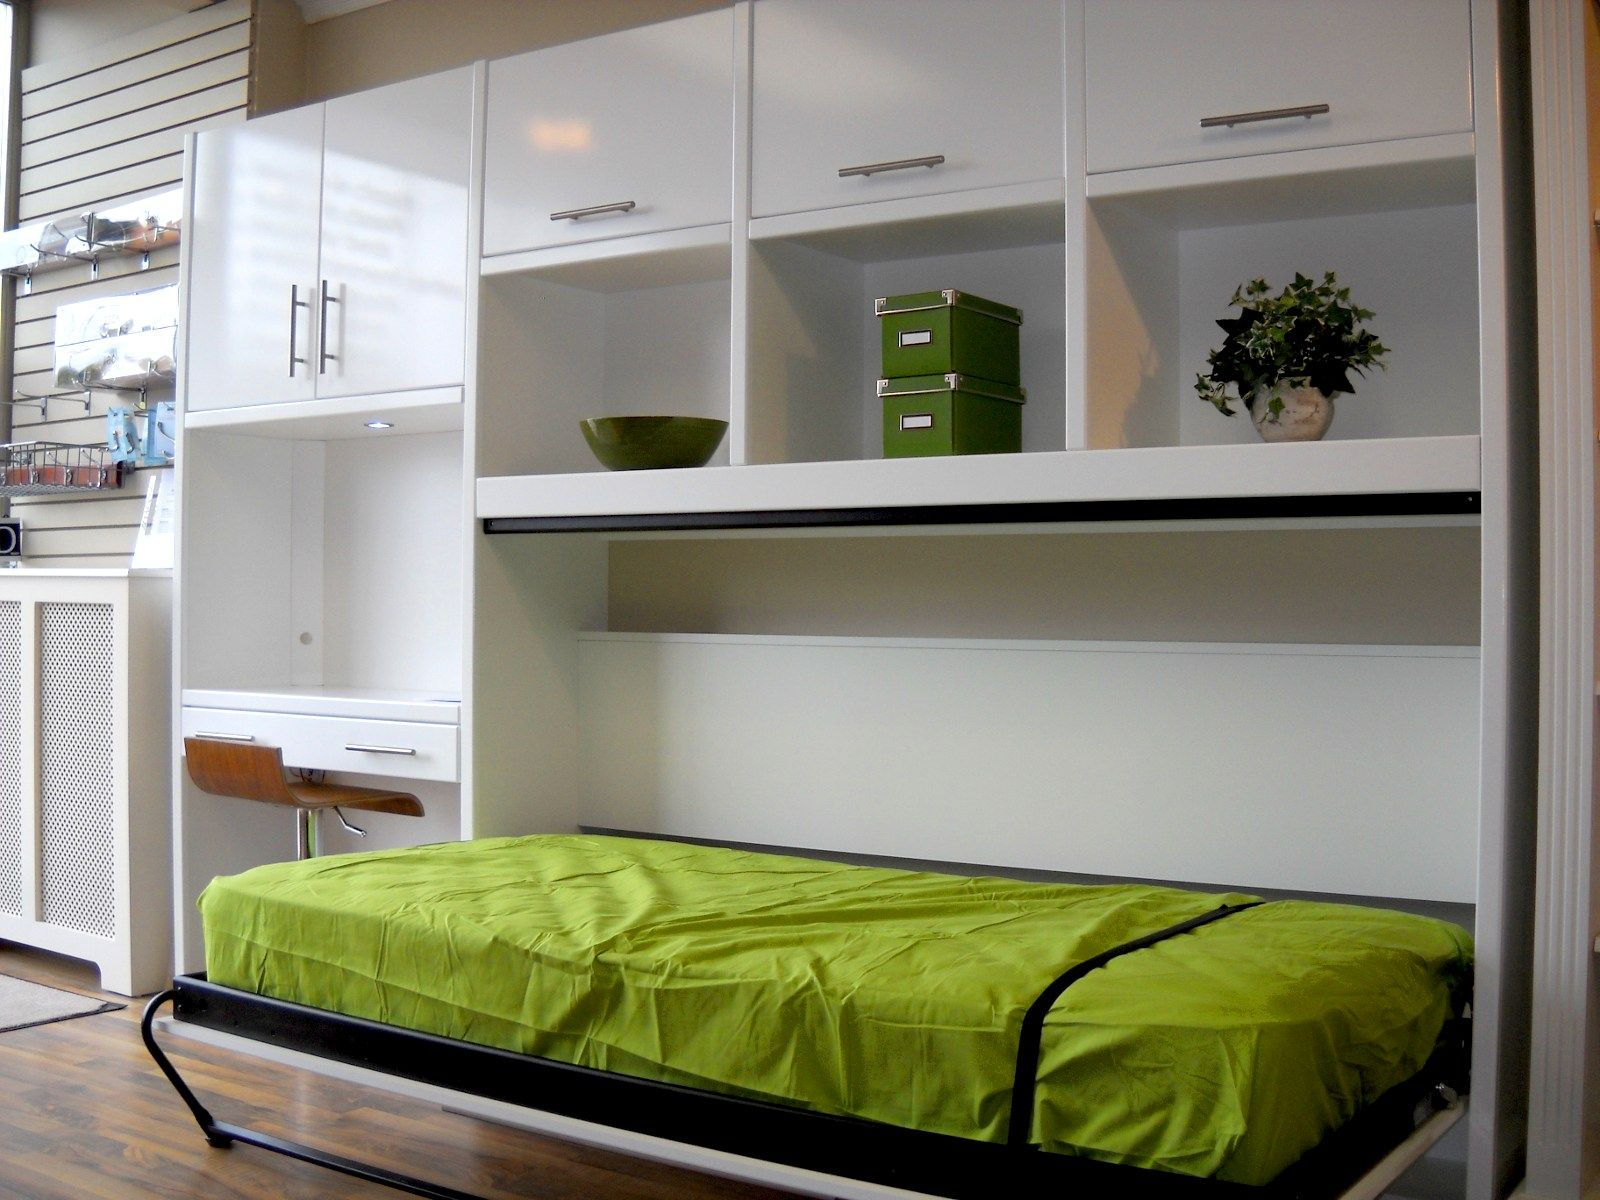 furnituremodern modular shelving units design ideas with white side modular shelving unit combined with murphy bed